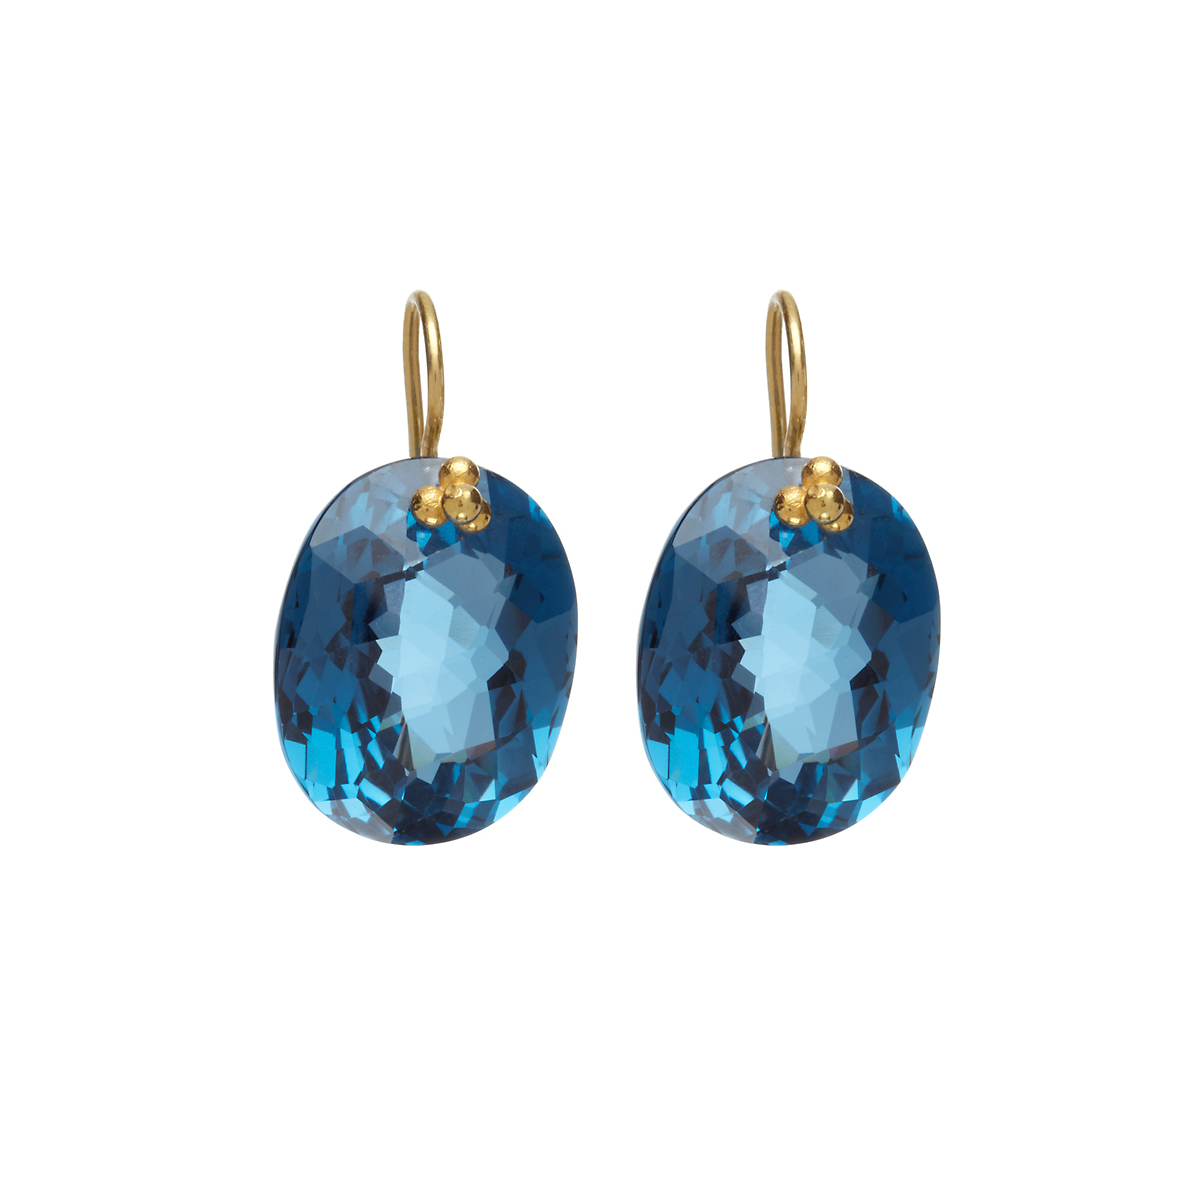 Nikki Baker London Blue Topaz Oval Drop Earrings